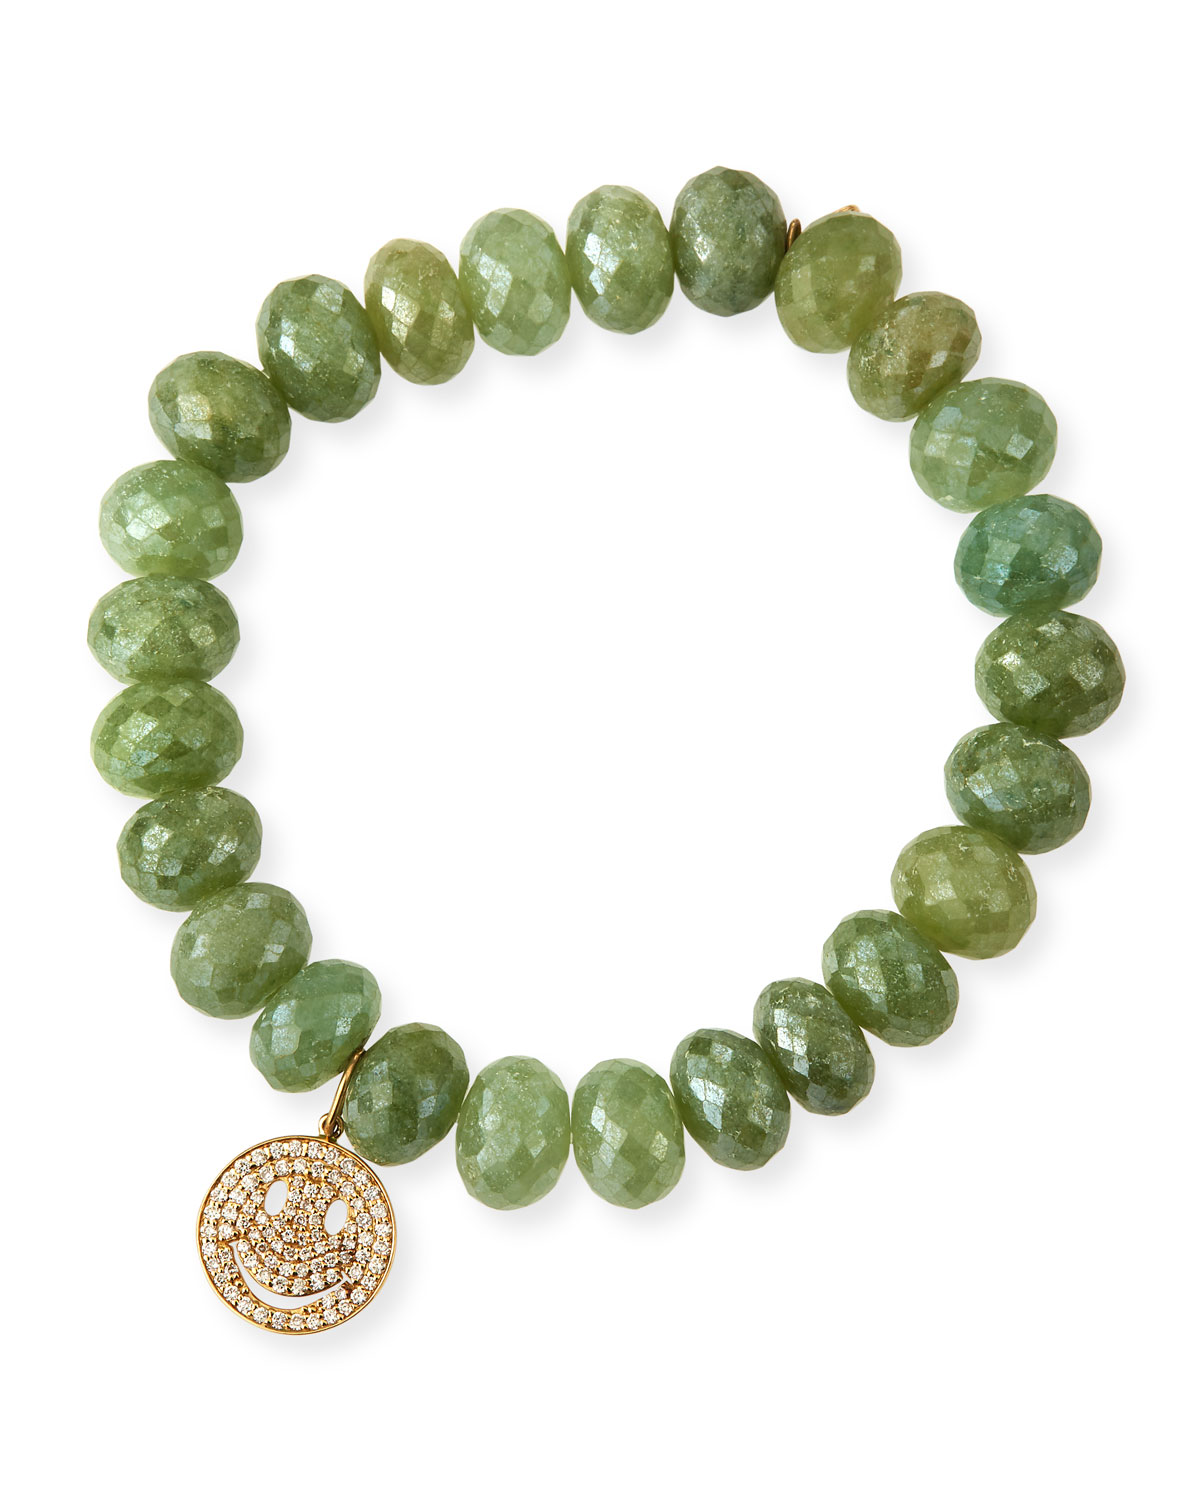 Sydney Evan Green Silverite Beaded Bracelet with Diamond Smiley Charm